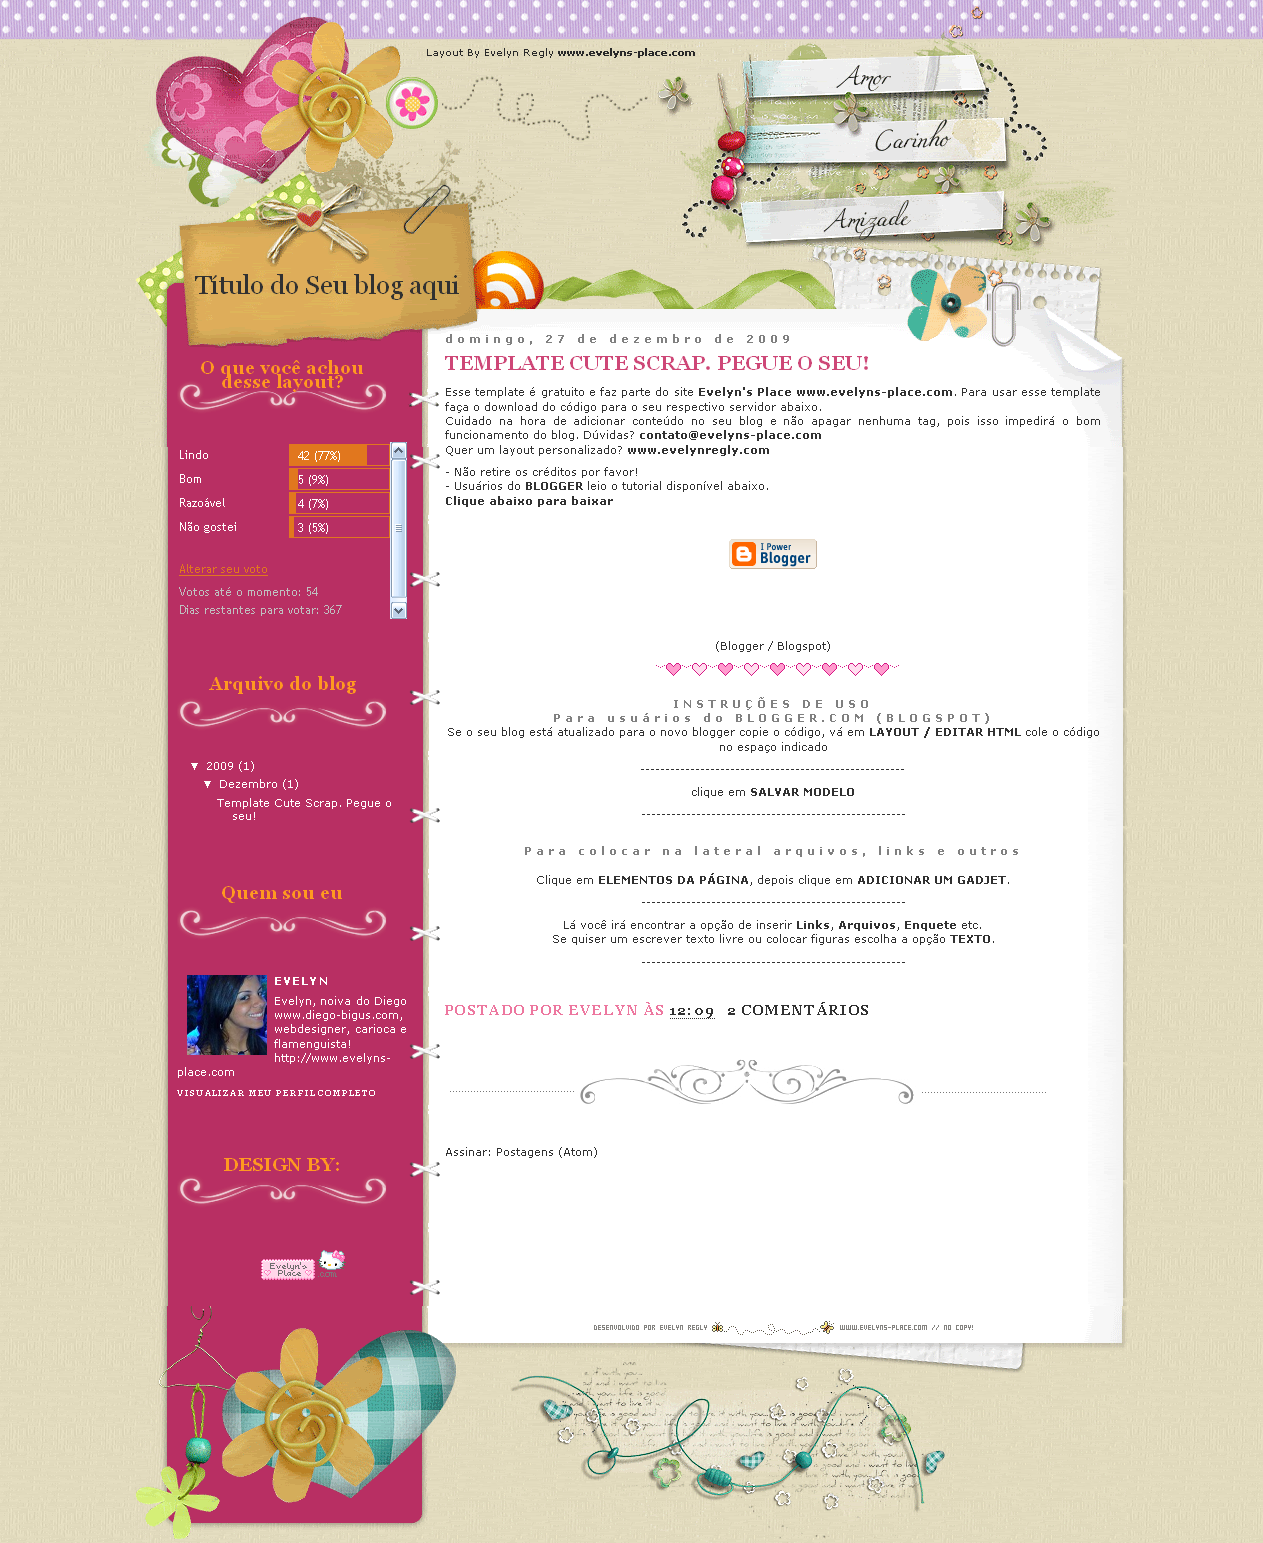 Cute Srap Free Layout Blogger by EvelynRegly on DeviantArt